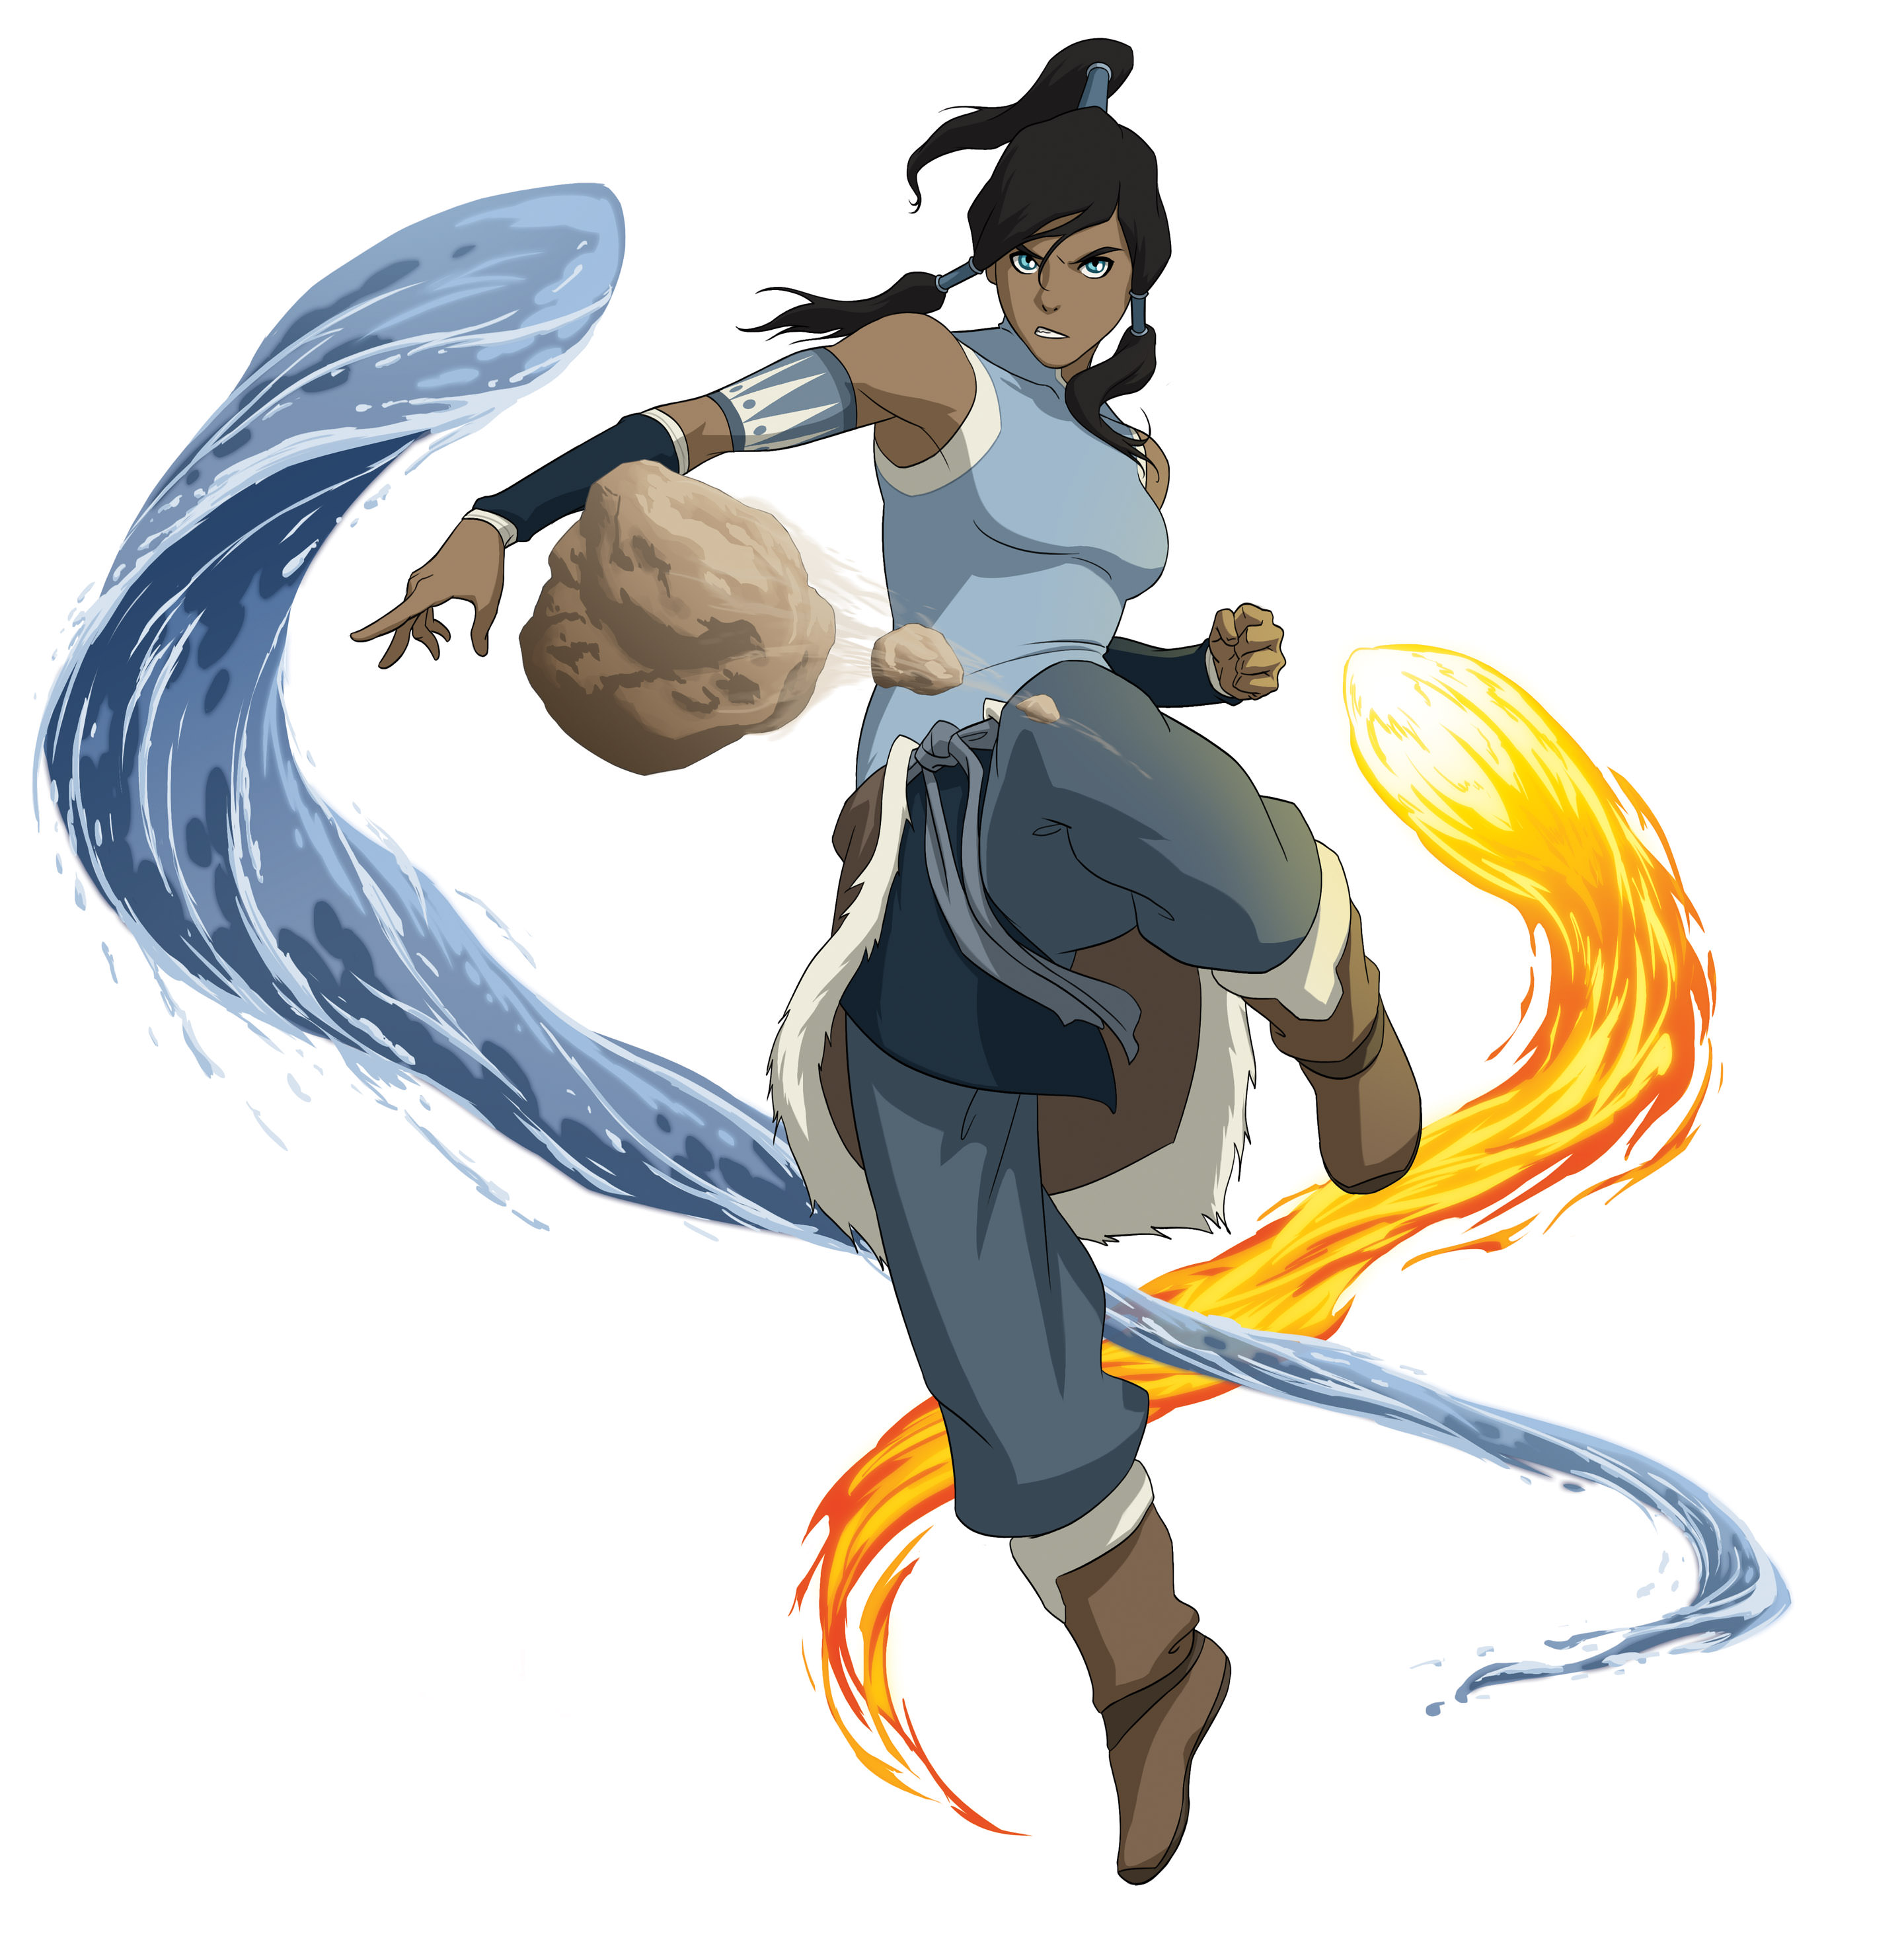 Pictured: Korra displays earth, water and firebending in THE LEGEND OF KORRA on Nickelodeon. Photo: Nickelodeon. ©2012 Viacom, International, Inc. All Rights Reserved